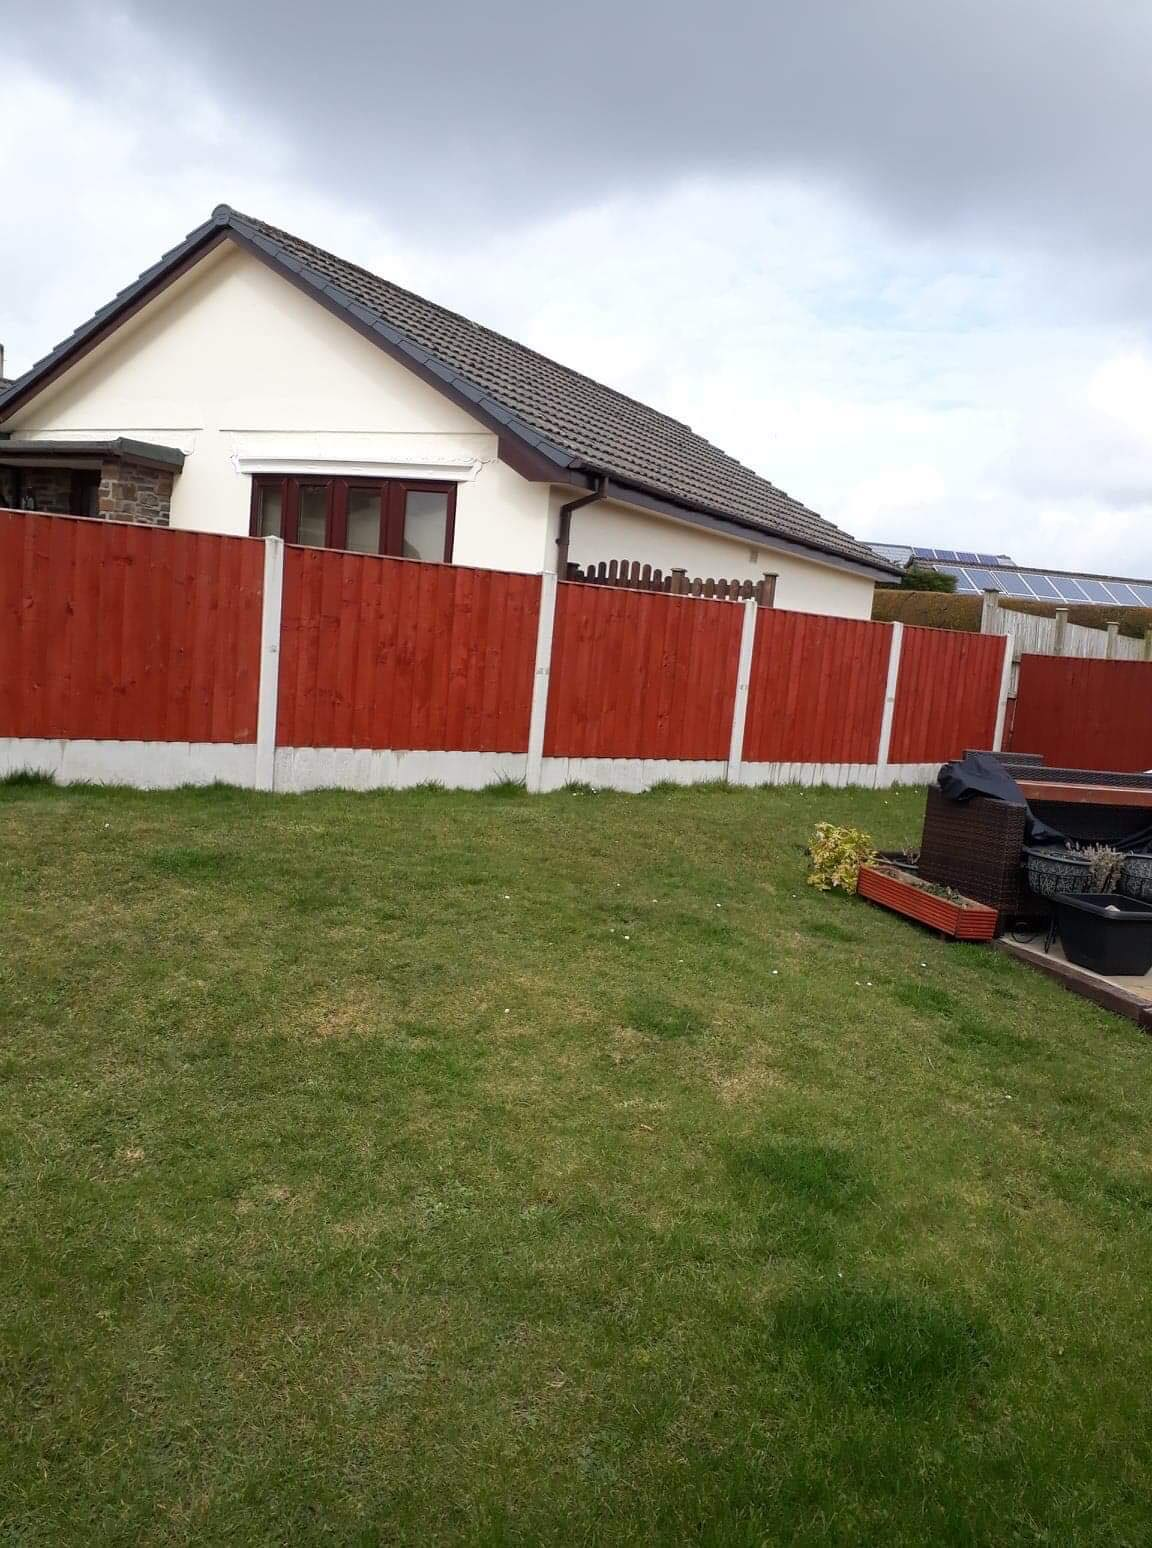 Stained panel fencing in concrete base. Dramatic colouring against the green grass.